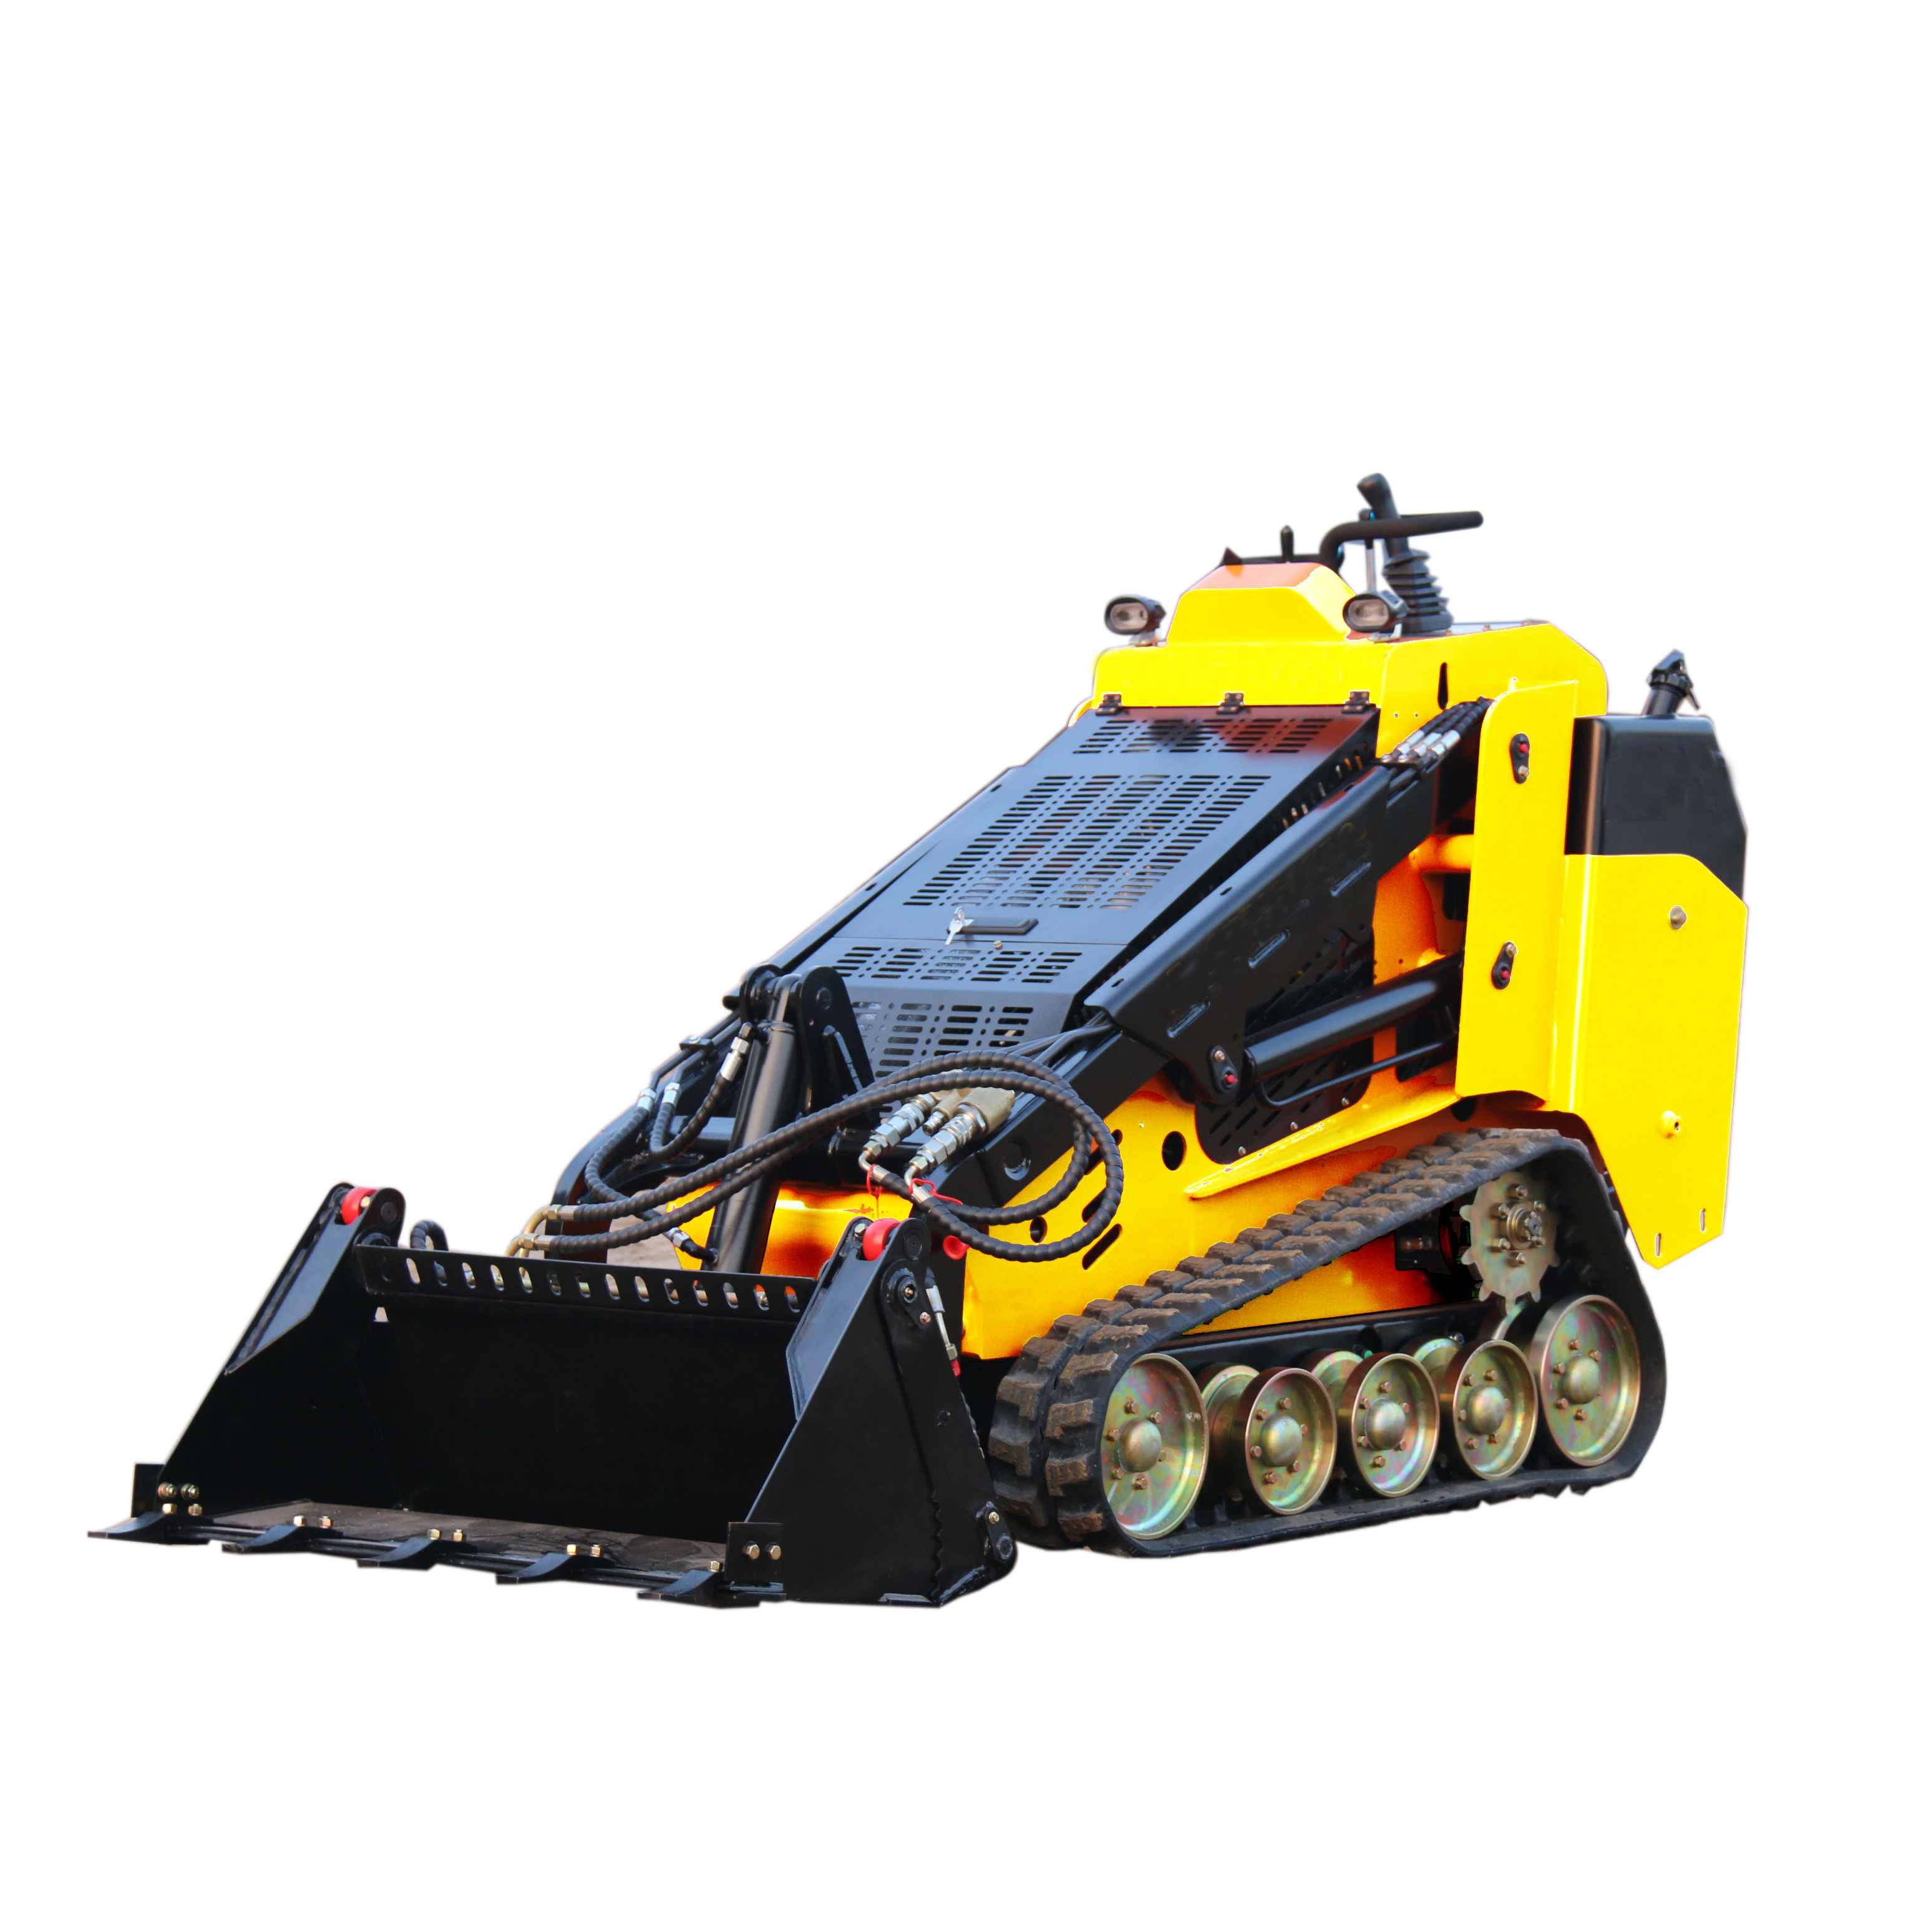 CHINA hengtian 30HP TY marca new mini skid steer loader motor diesel como boxeador toro loader